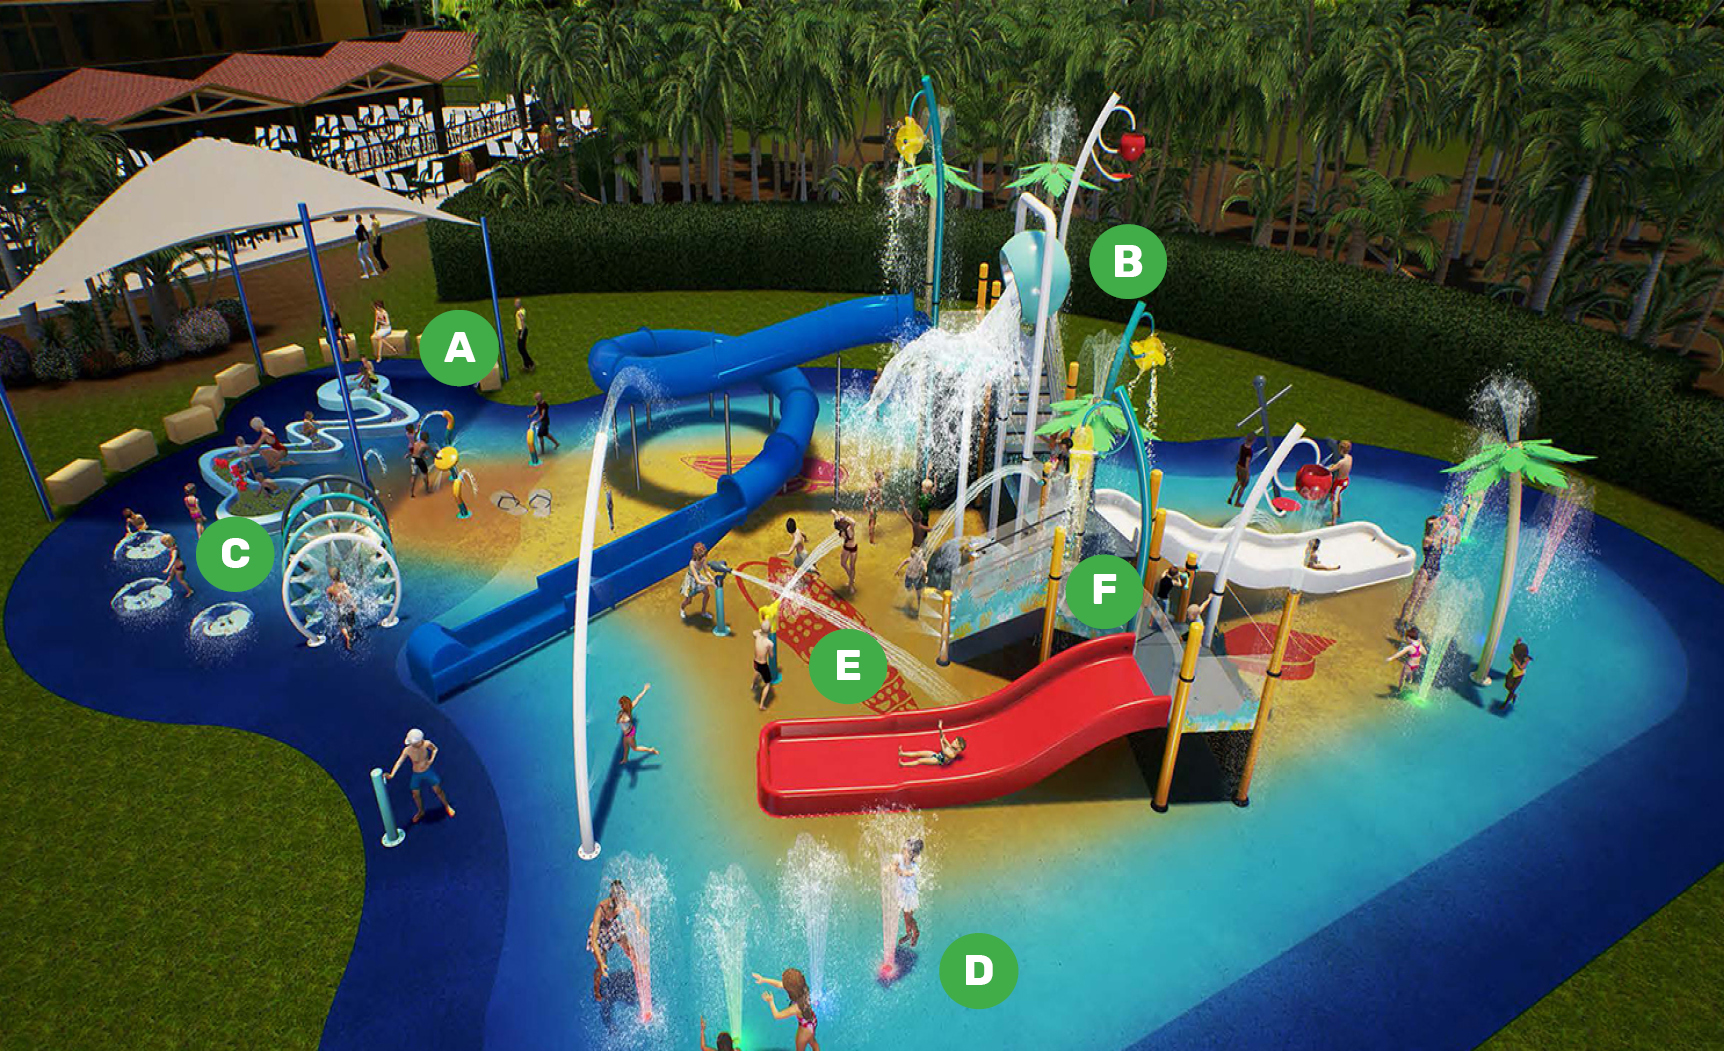 Diagram of a water playground with items labelled